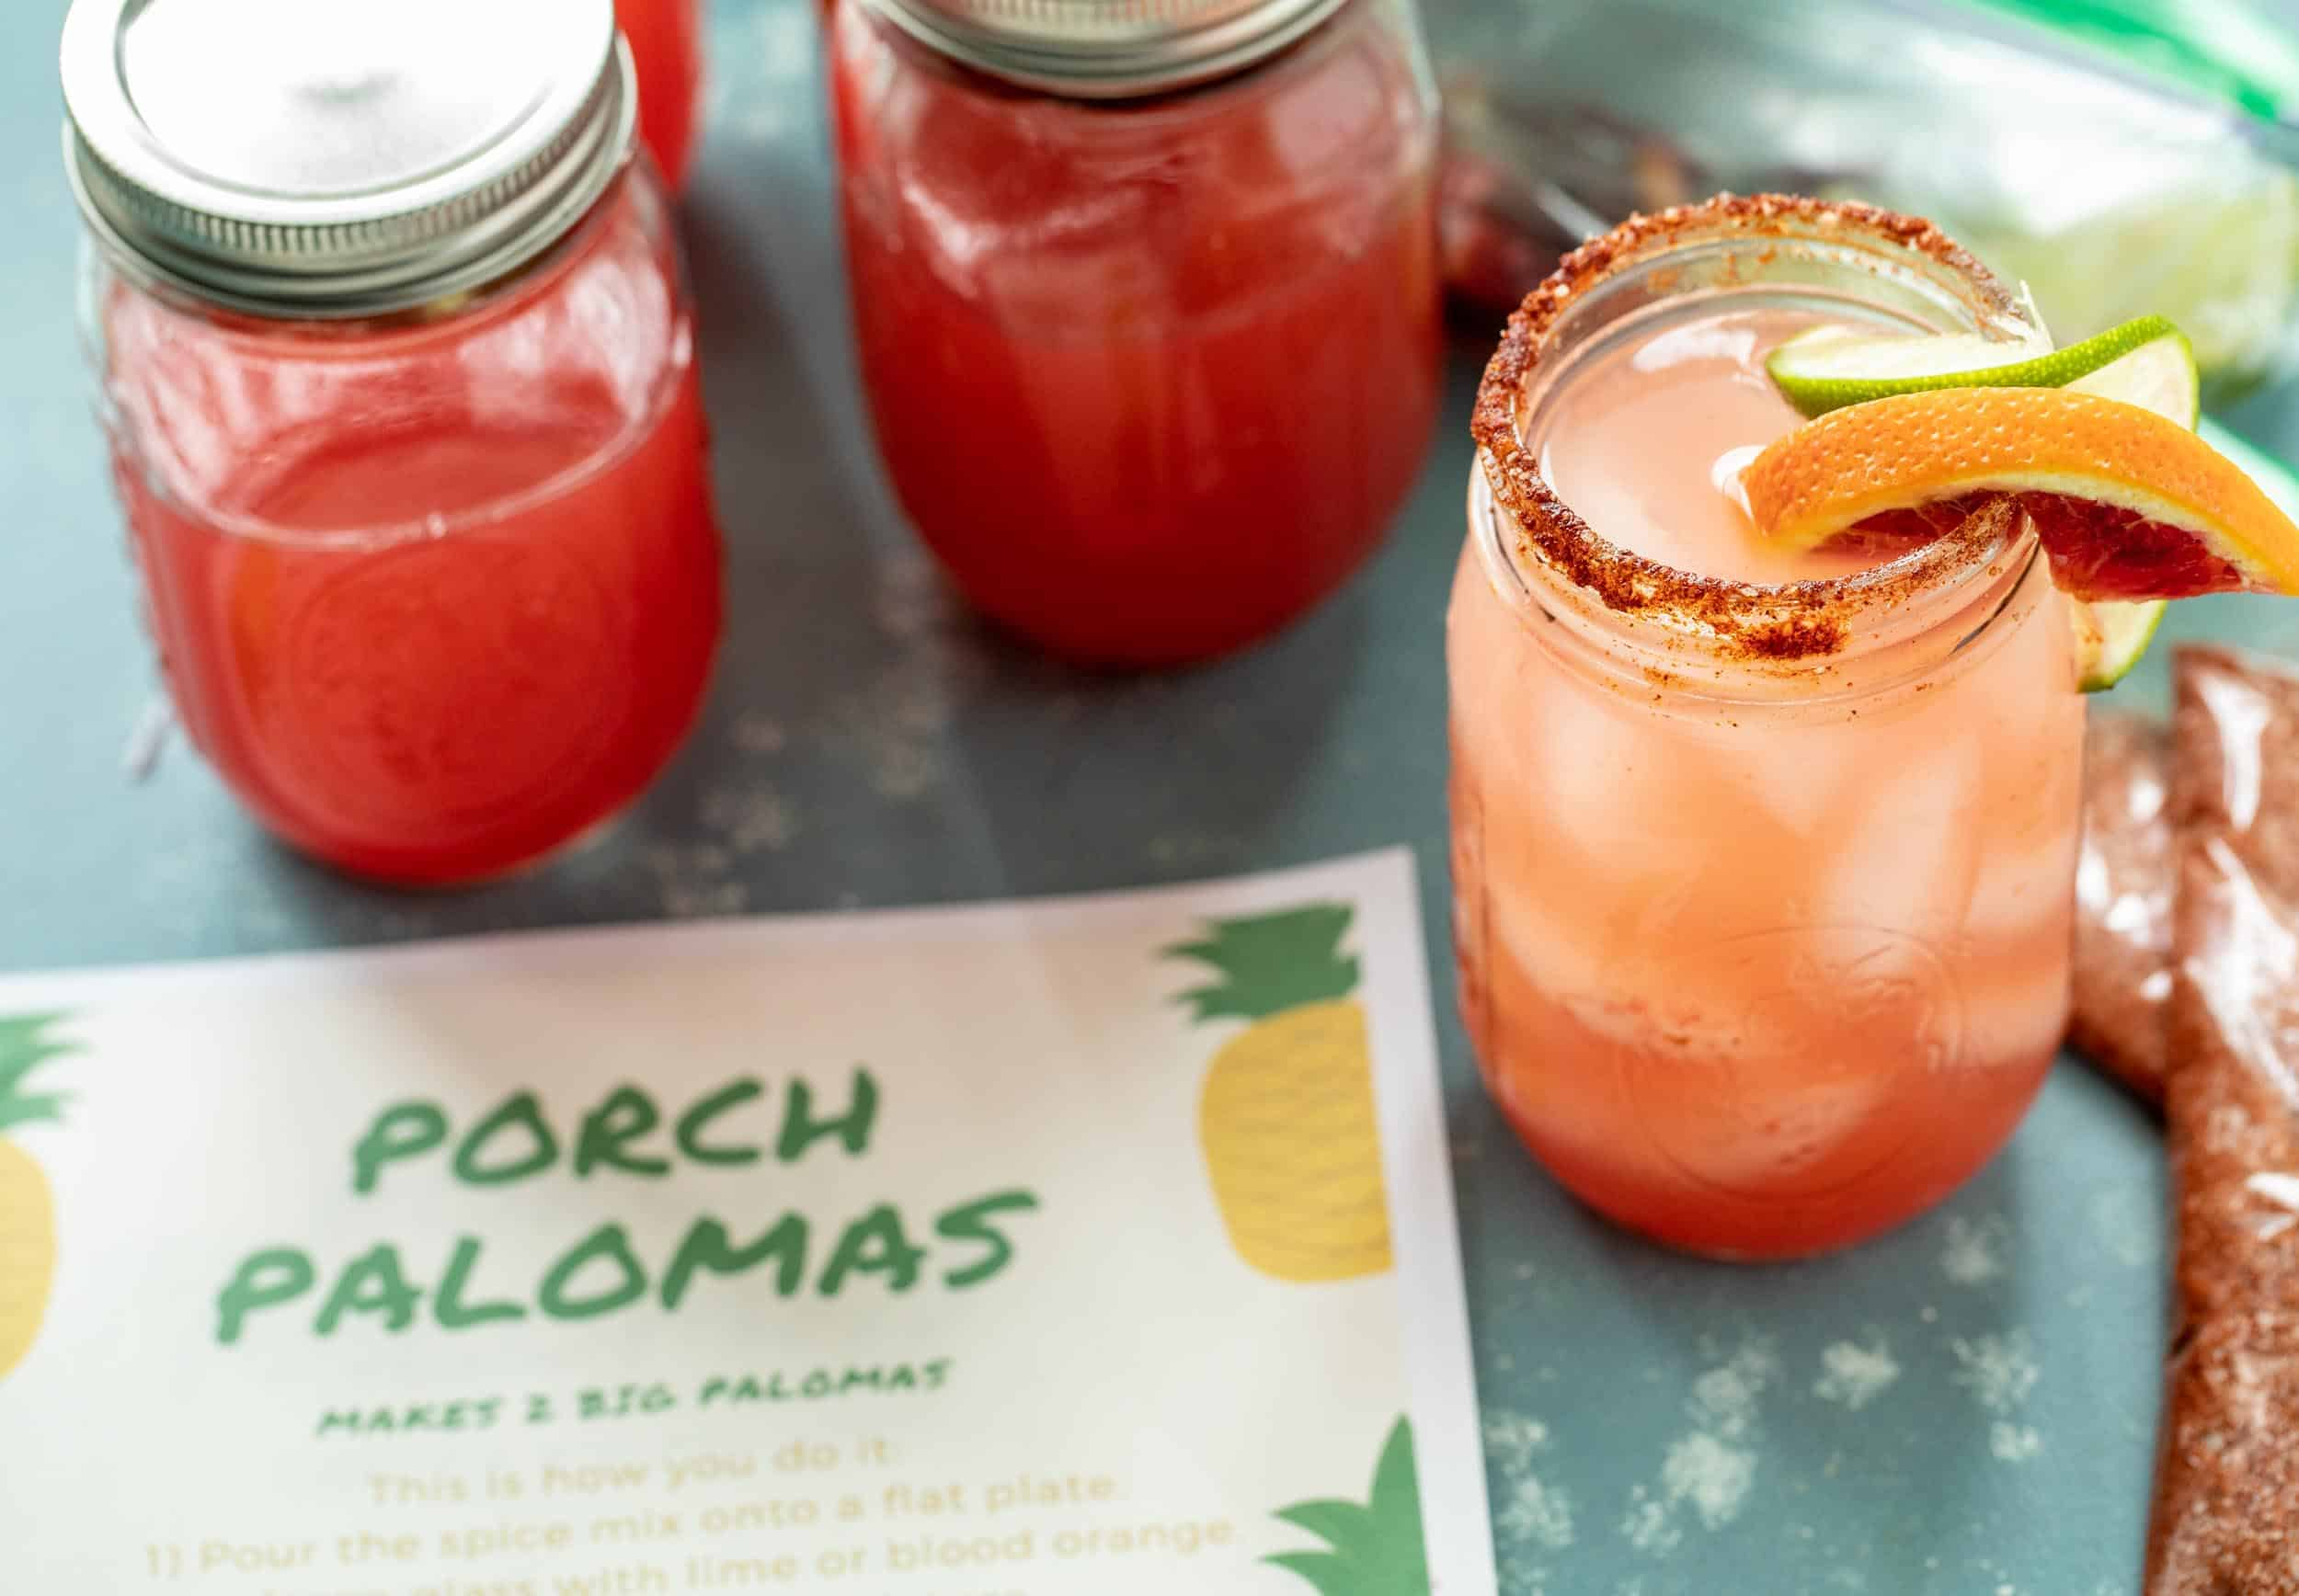 Porch Palomas